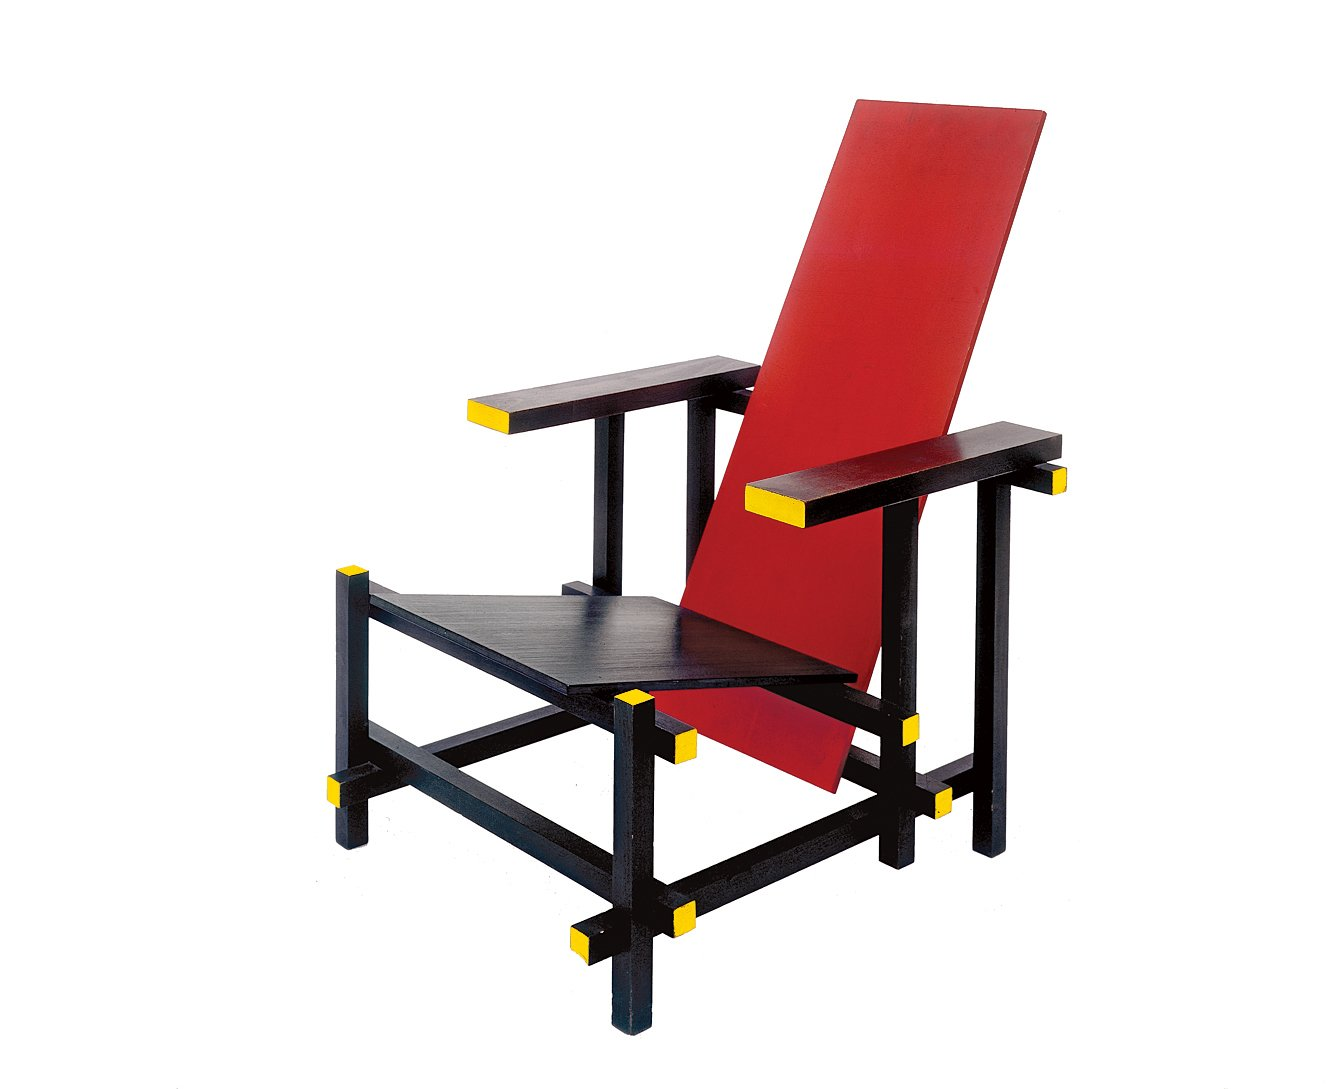 Rietveld's Red and Blue chair, designed in 1917, is a dramatic composition of planes and lines. The colors were inspired by Mondrian, a fellow member of the influential De Stijl movement.